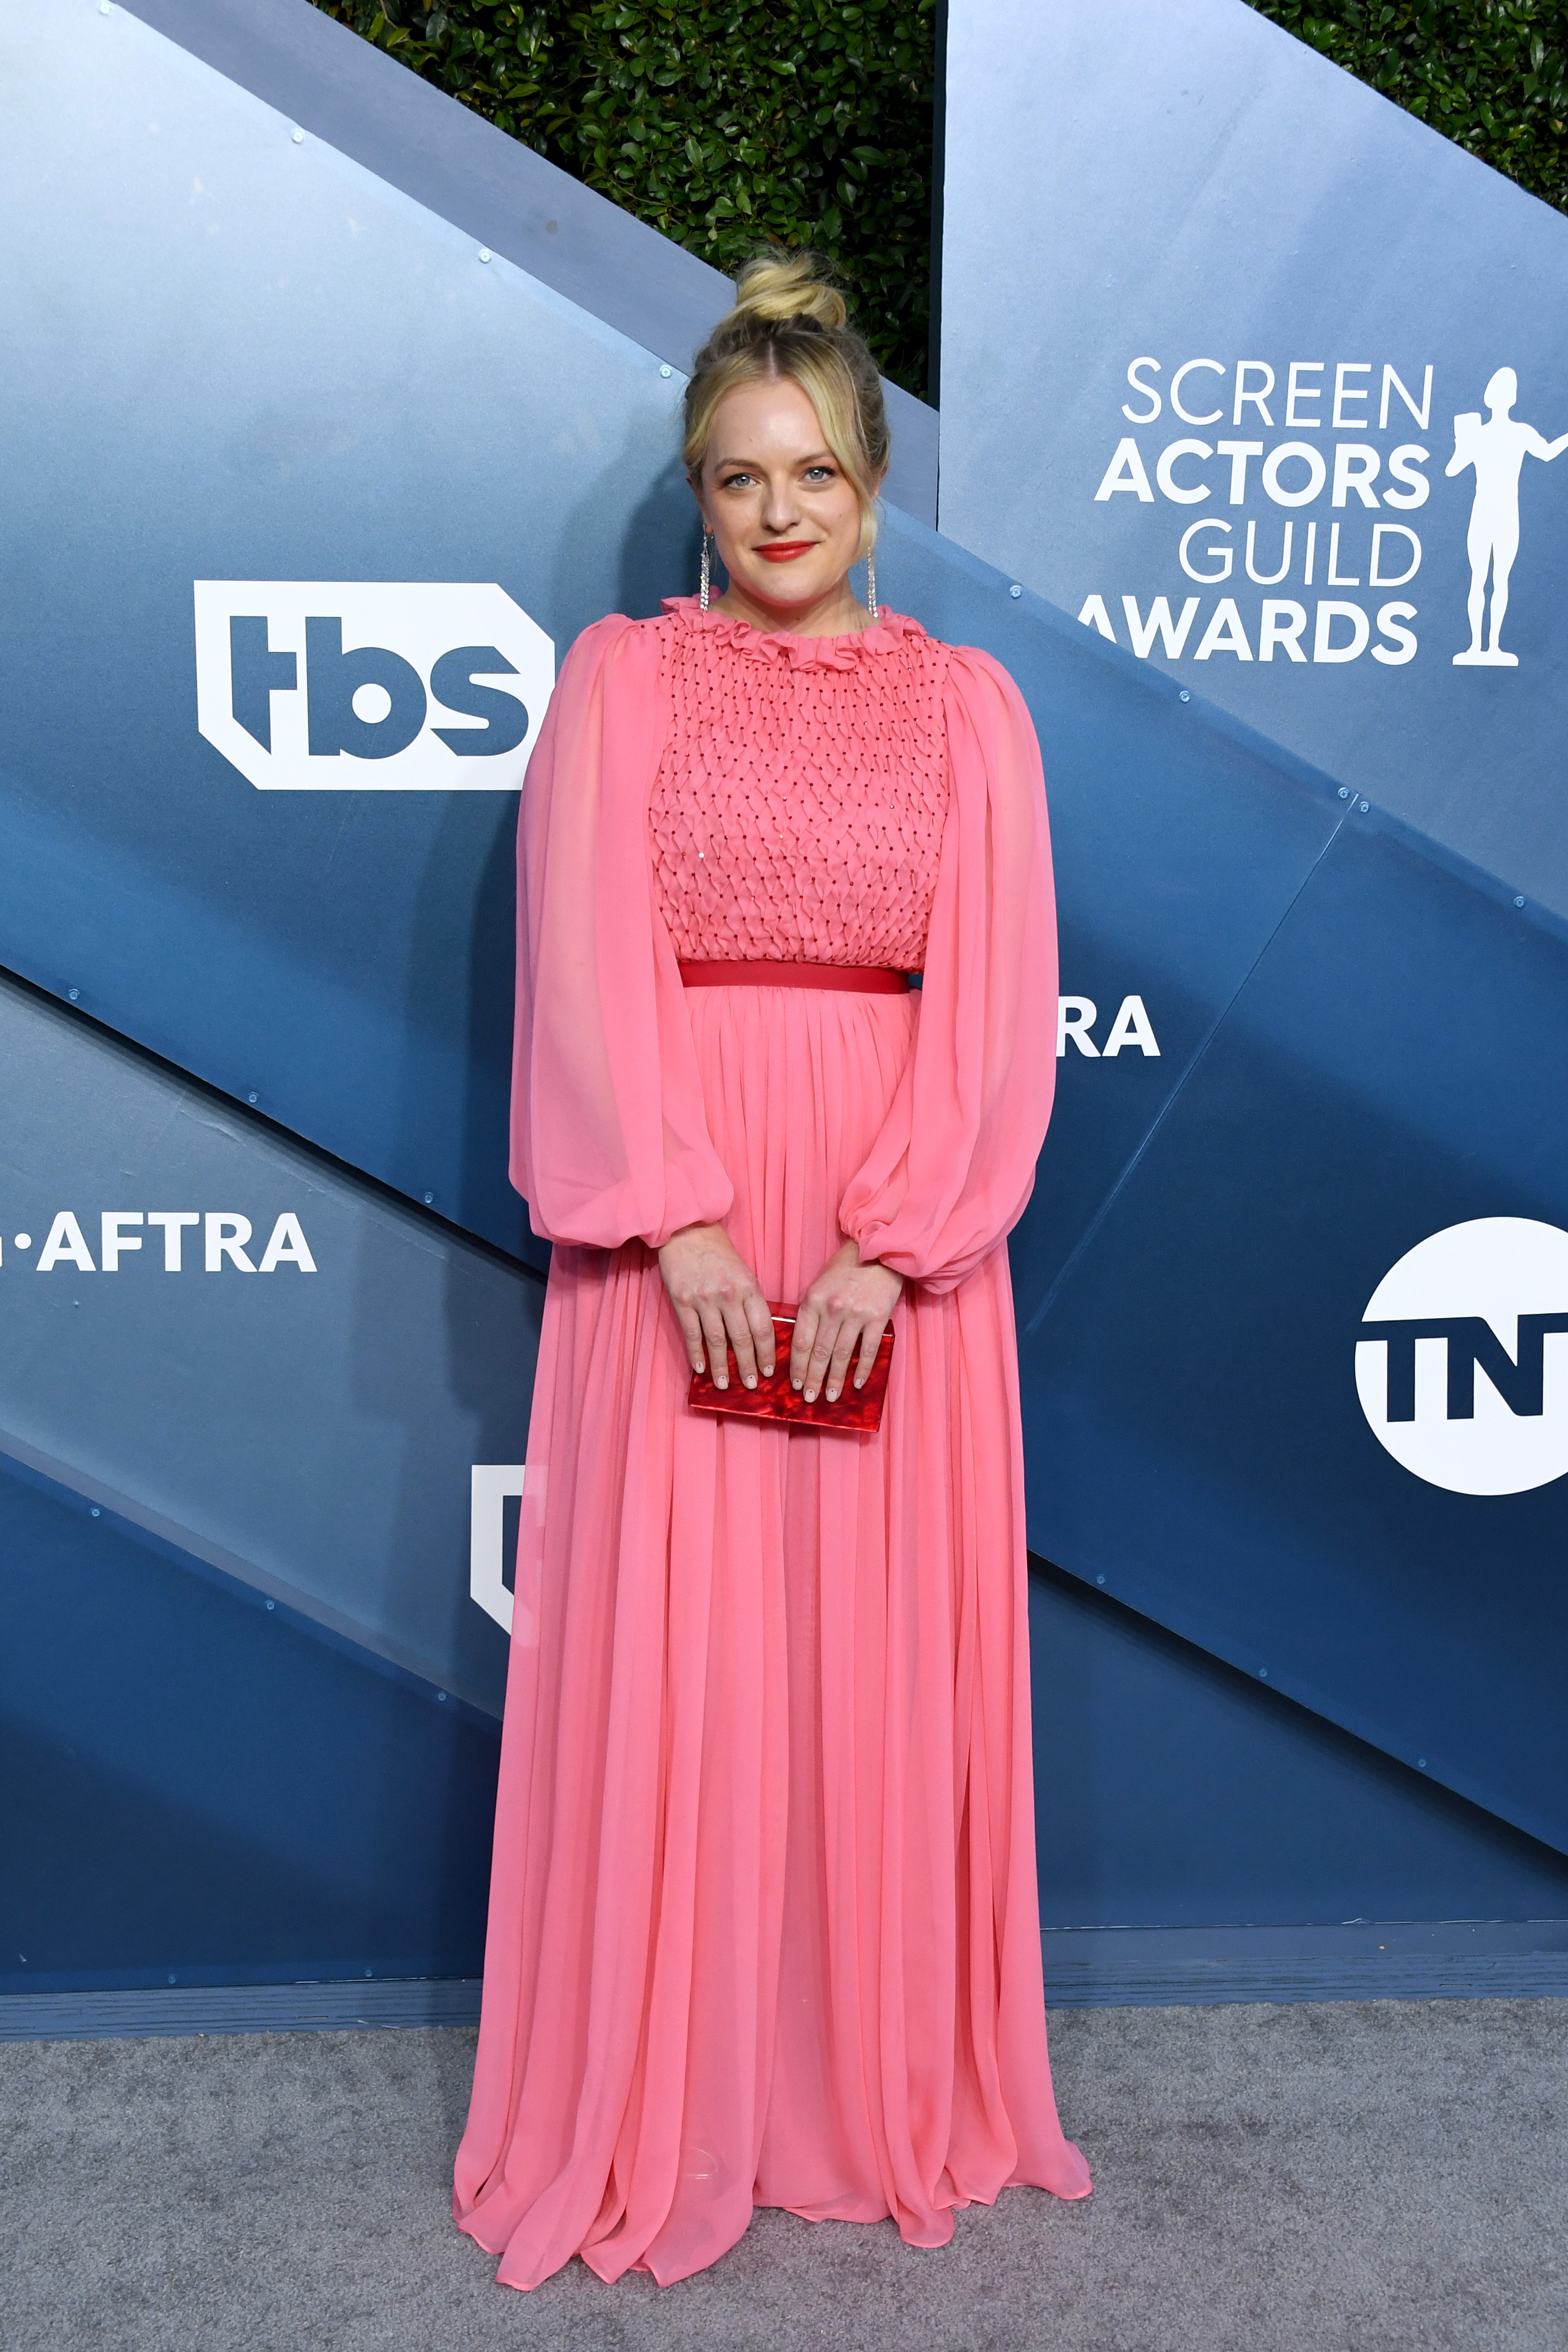 LOS ANGELES, CALIFORNIA - JANUARY 19: Elisabeth Moss attends the 26th Annual Screen ActorsGuild Awards at The Shrine Auditorium on January 19, 2020 in Los Angeles, California. (Photo by Jon Kopaloff/Getty Images)